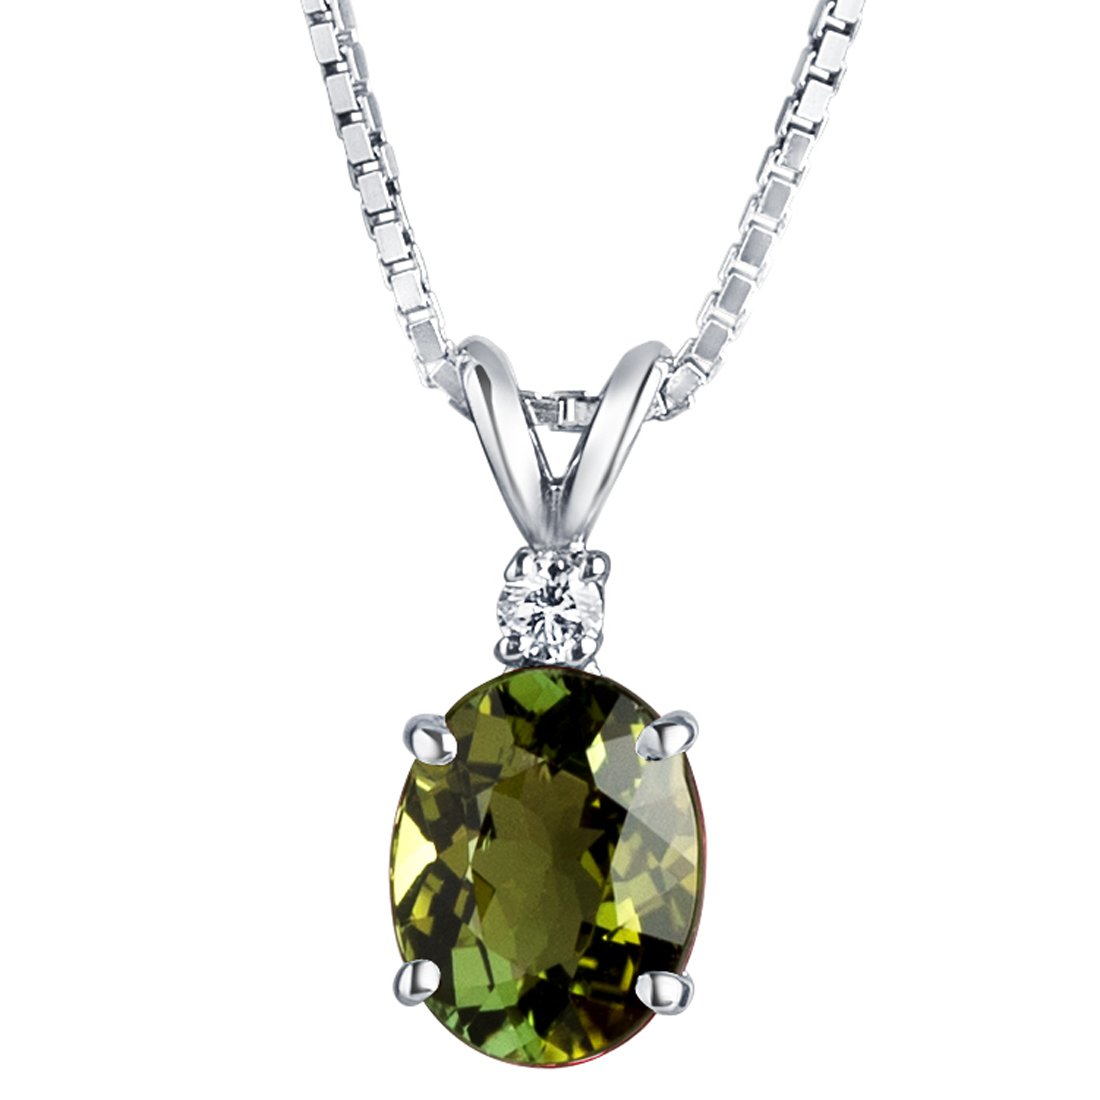 14 Karat White Gold Green Tourmaline Diamond Pendant Oval Shape 2 Carats